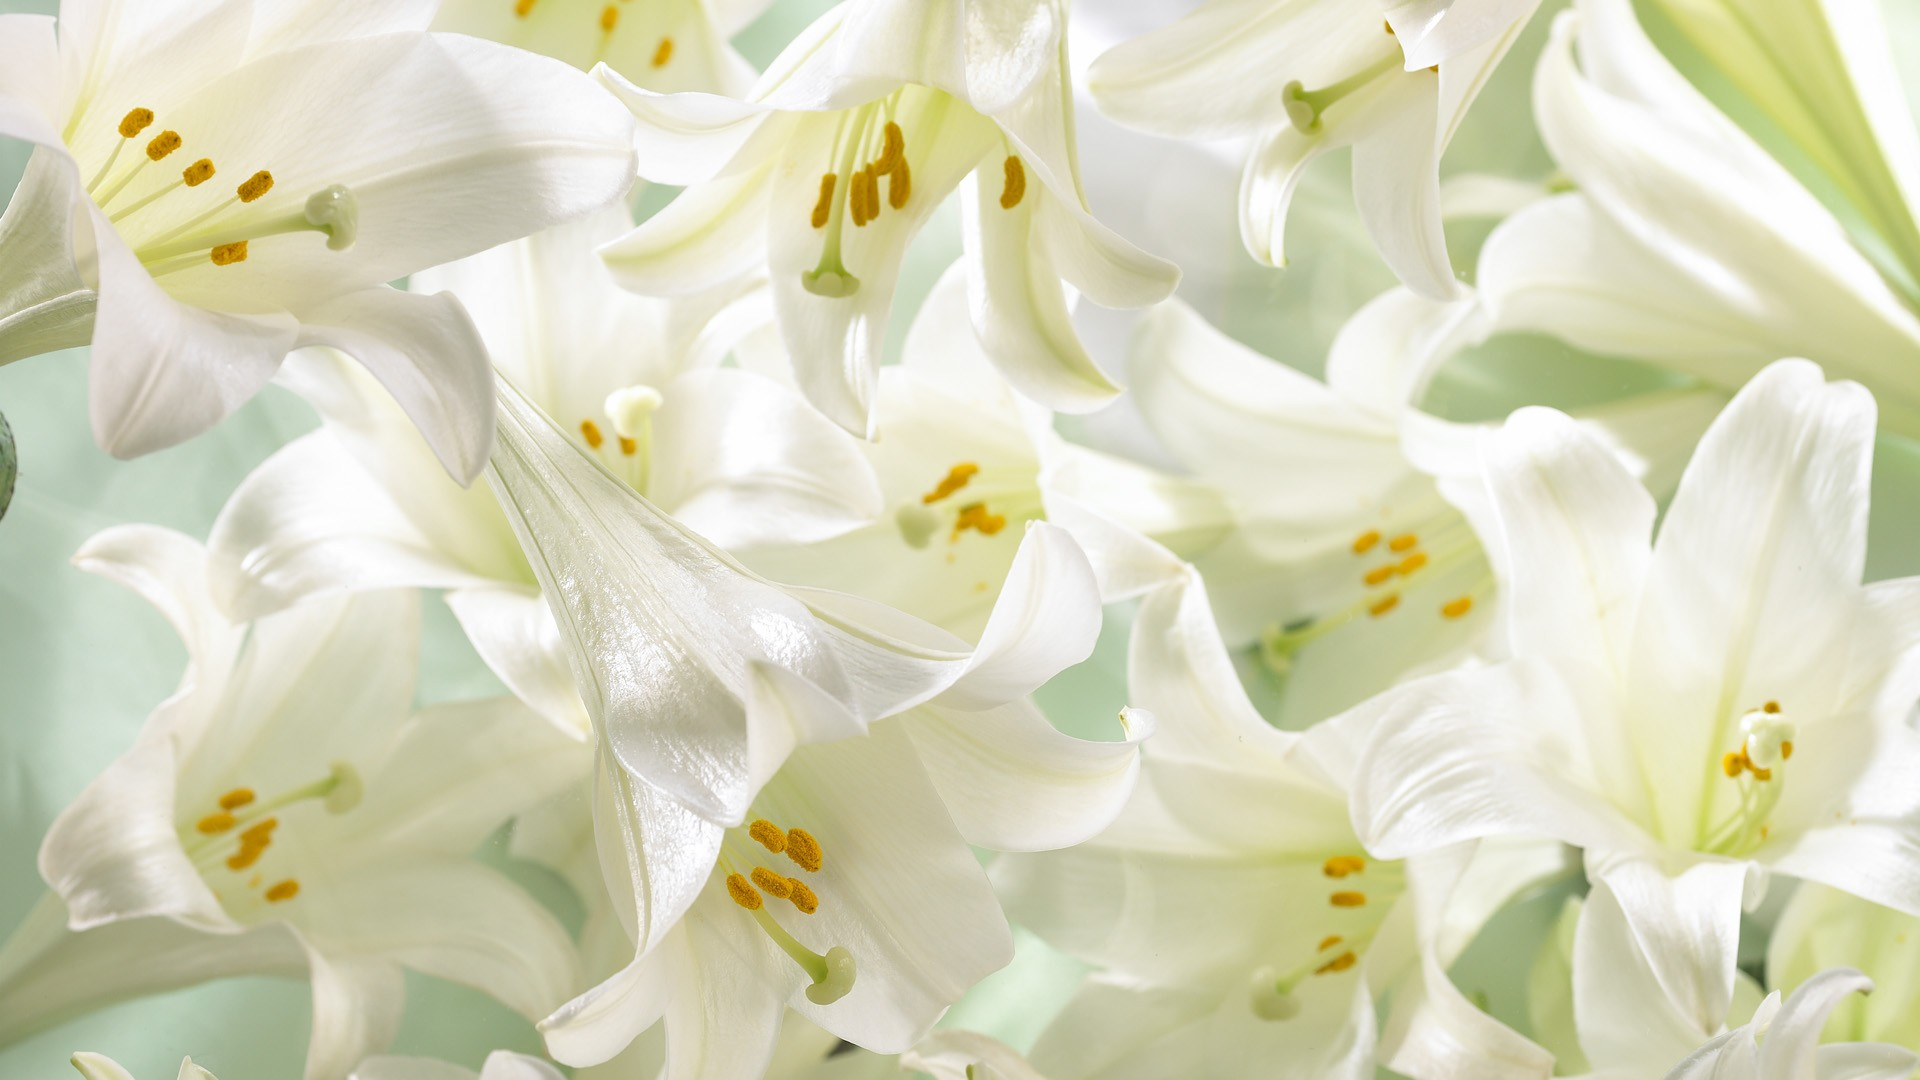 White lily flowers desktop wallpaper 50634 1920x1080px white lily flowers desktop wallpaper 50634 izmirmasajfo